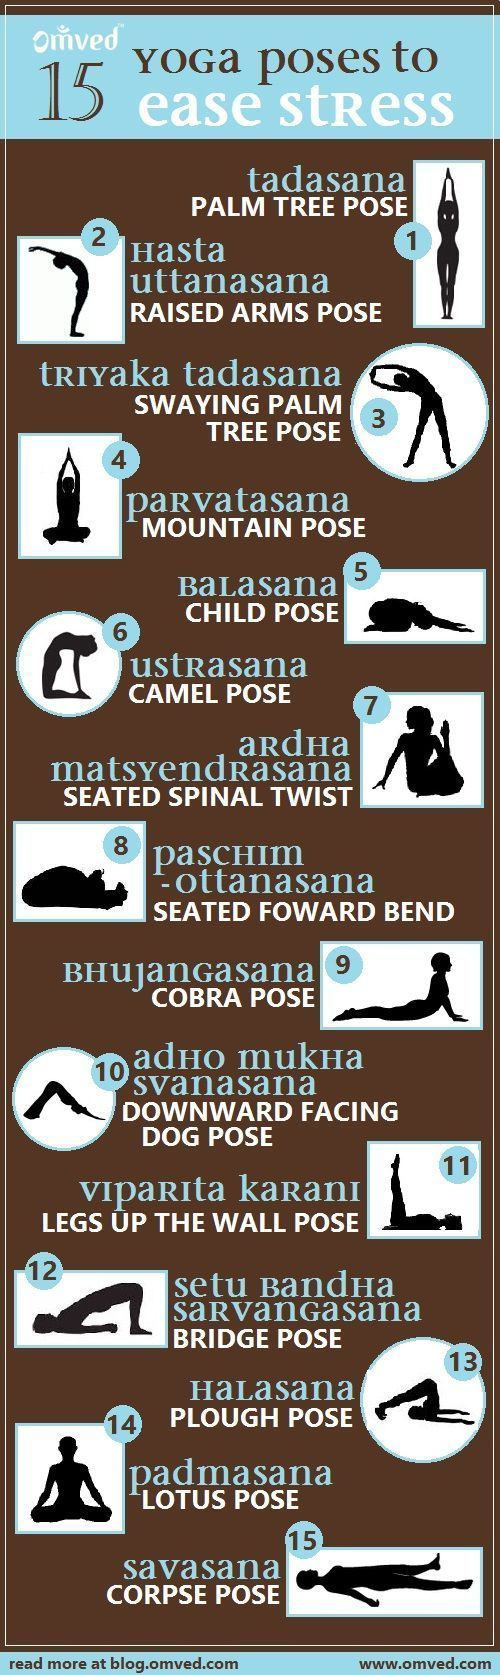 yoga poses to ease stress